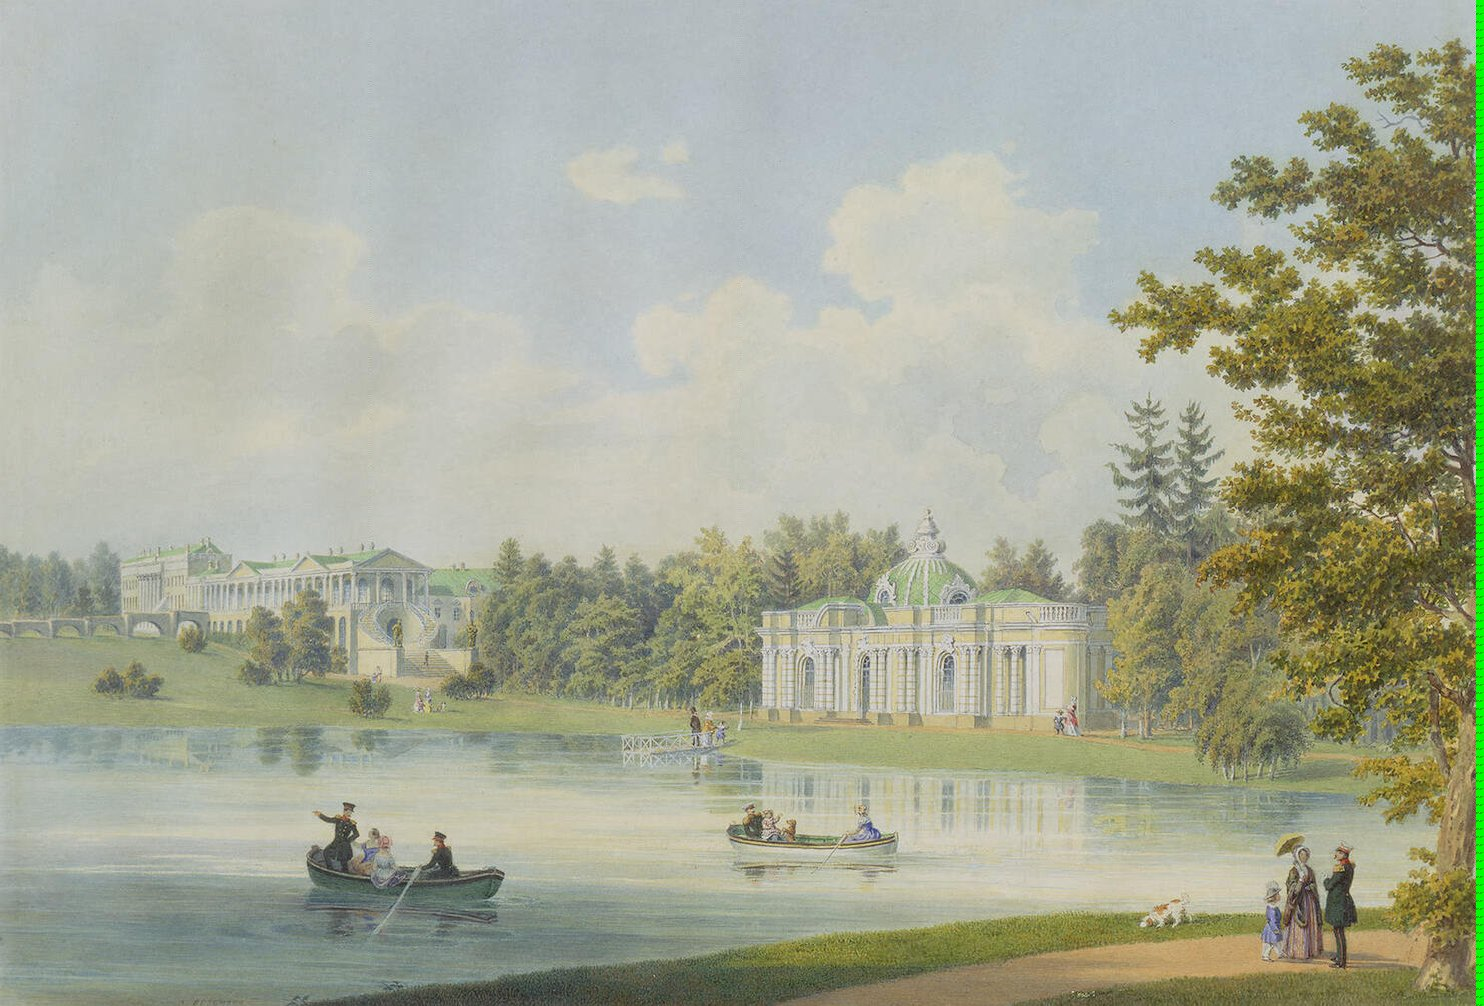 Cameron Gallery and Grotto on the Shore of the Pond in Tsarskoye Selo